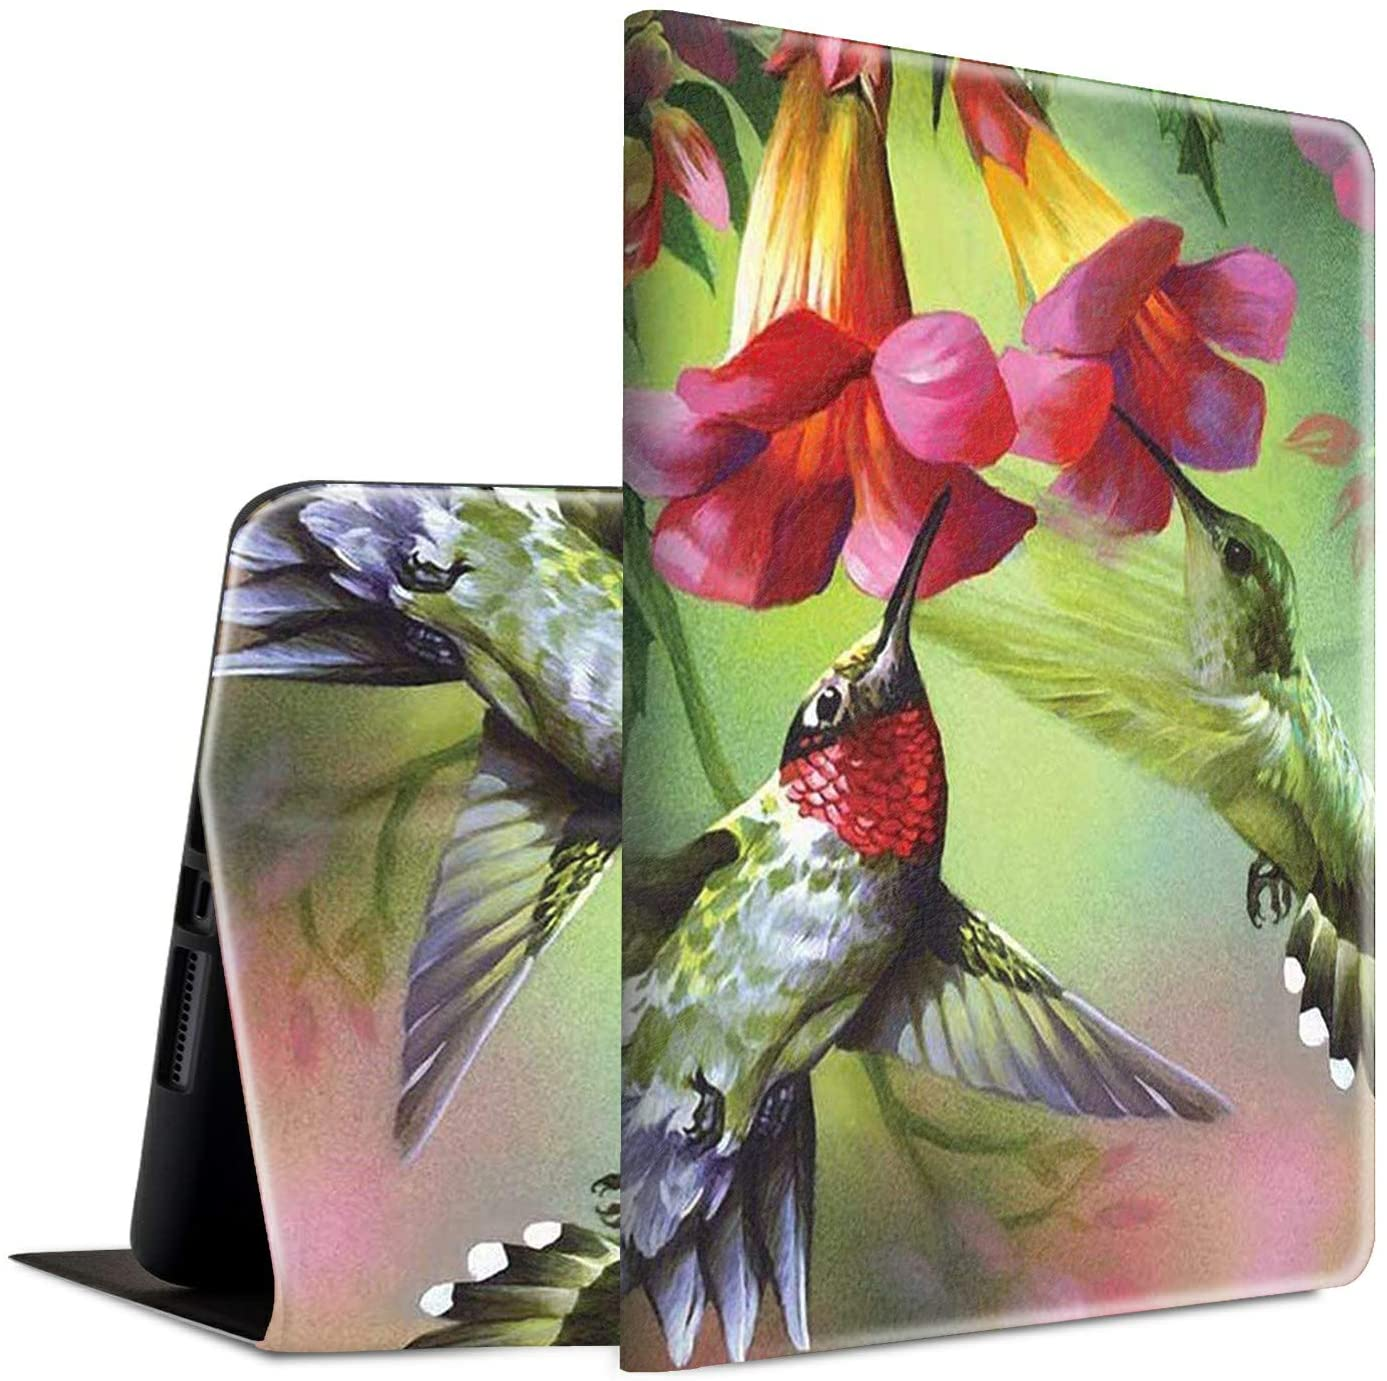 New iPad Pro 11 Case 2020, Spsun Lightweight PU Leather Folio Adjustable Stand with Auto Wake/Sleep Smart Protect Case for Apple iPad Pro 11 inch 2nd Generation - Hummingbirds